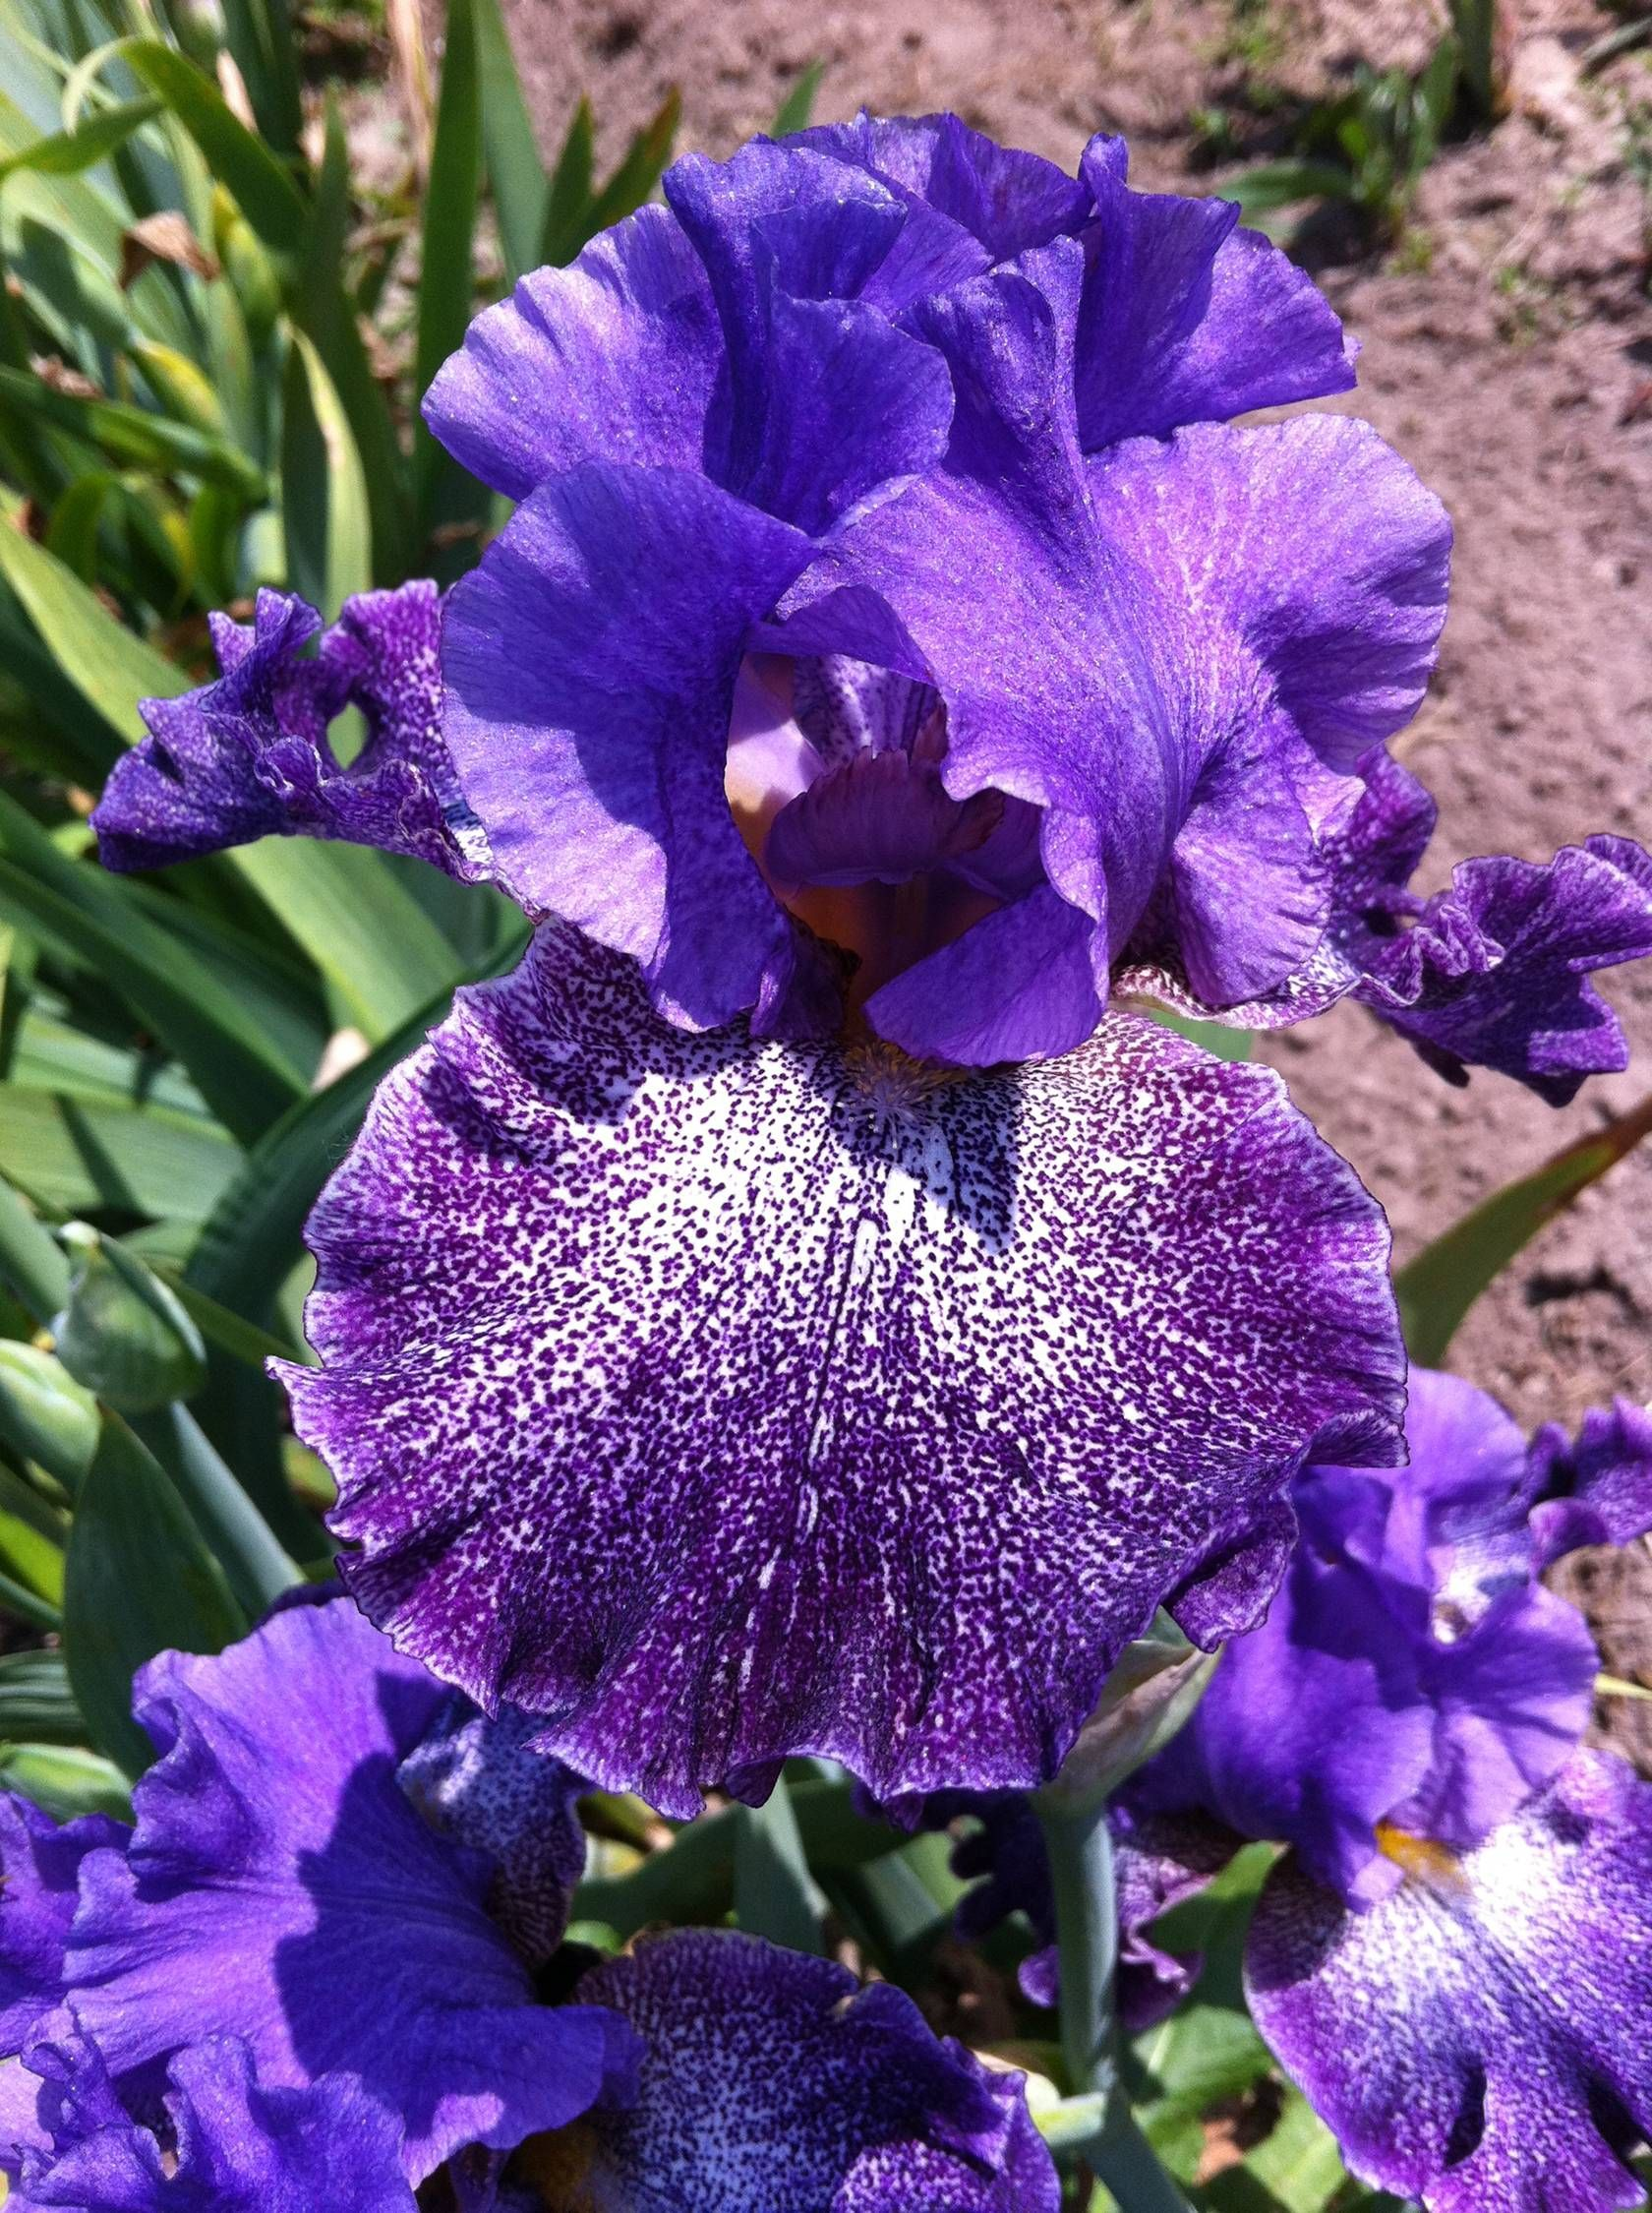 Celestial Explosion Fragrant German Iris The Petals Are Heavily